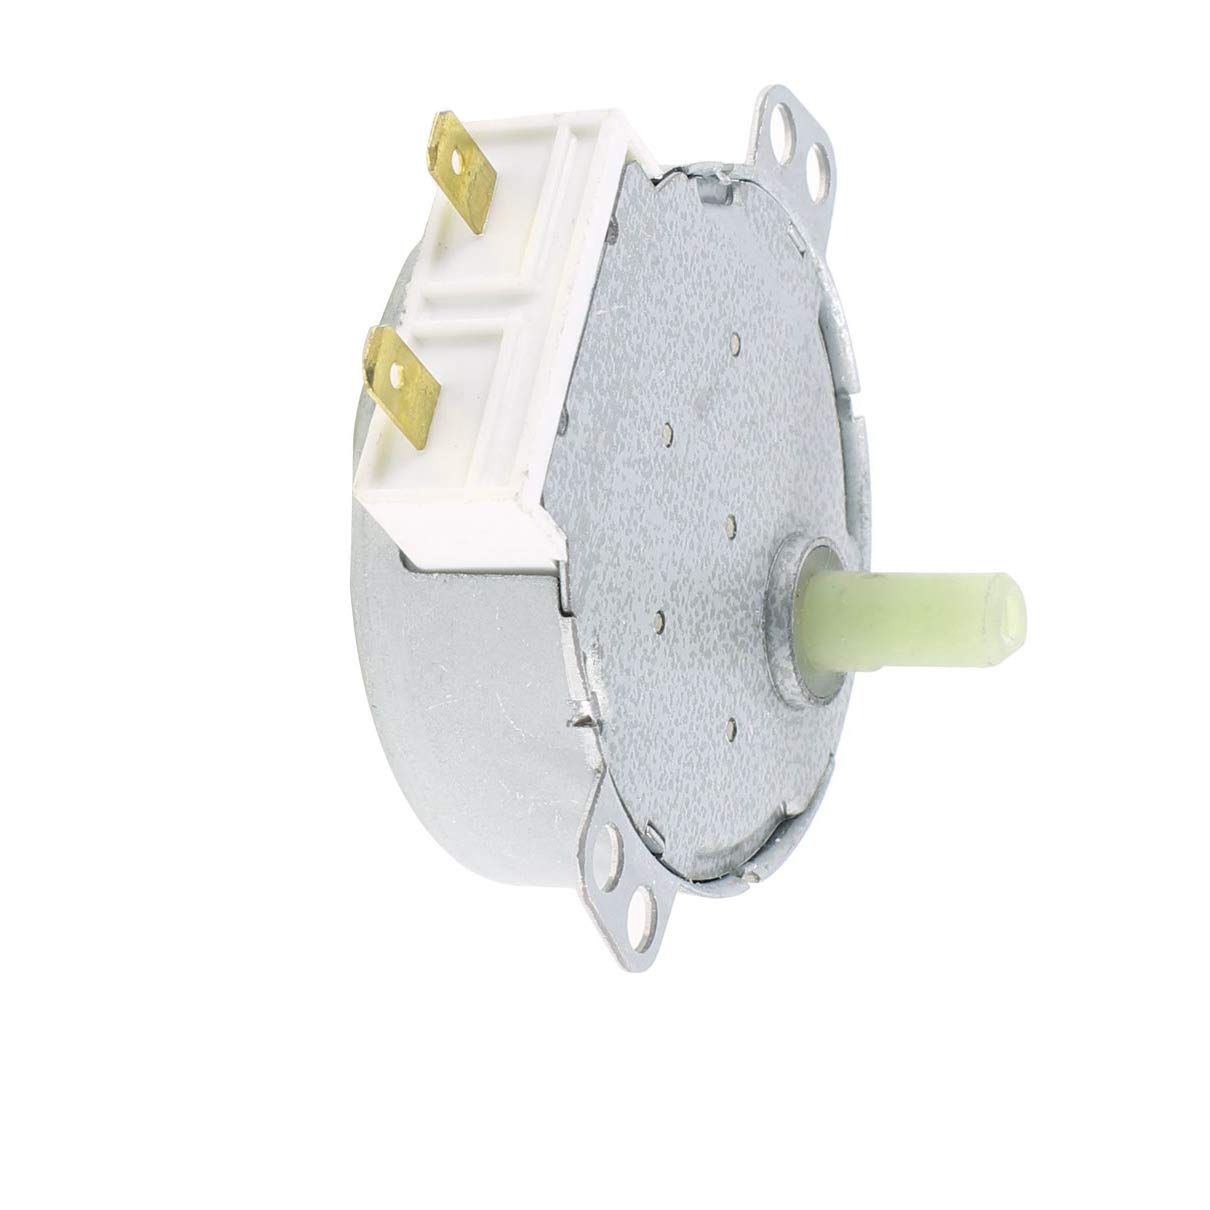 "Aexit Microwave Oven Electrical SS-5-240-TD 220-240VAC 5RPM Synchronous Motor 0.16"" Electric Motors Mount Hole"